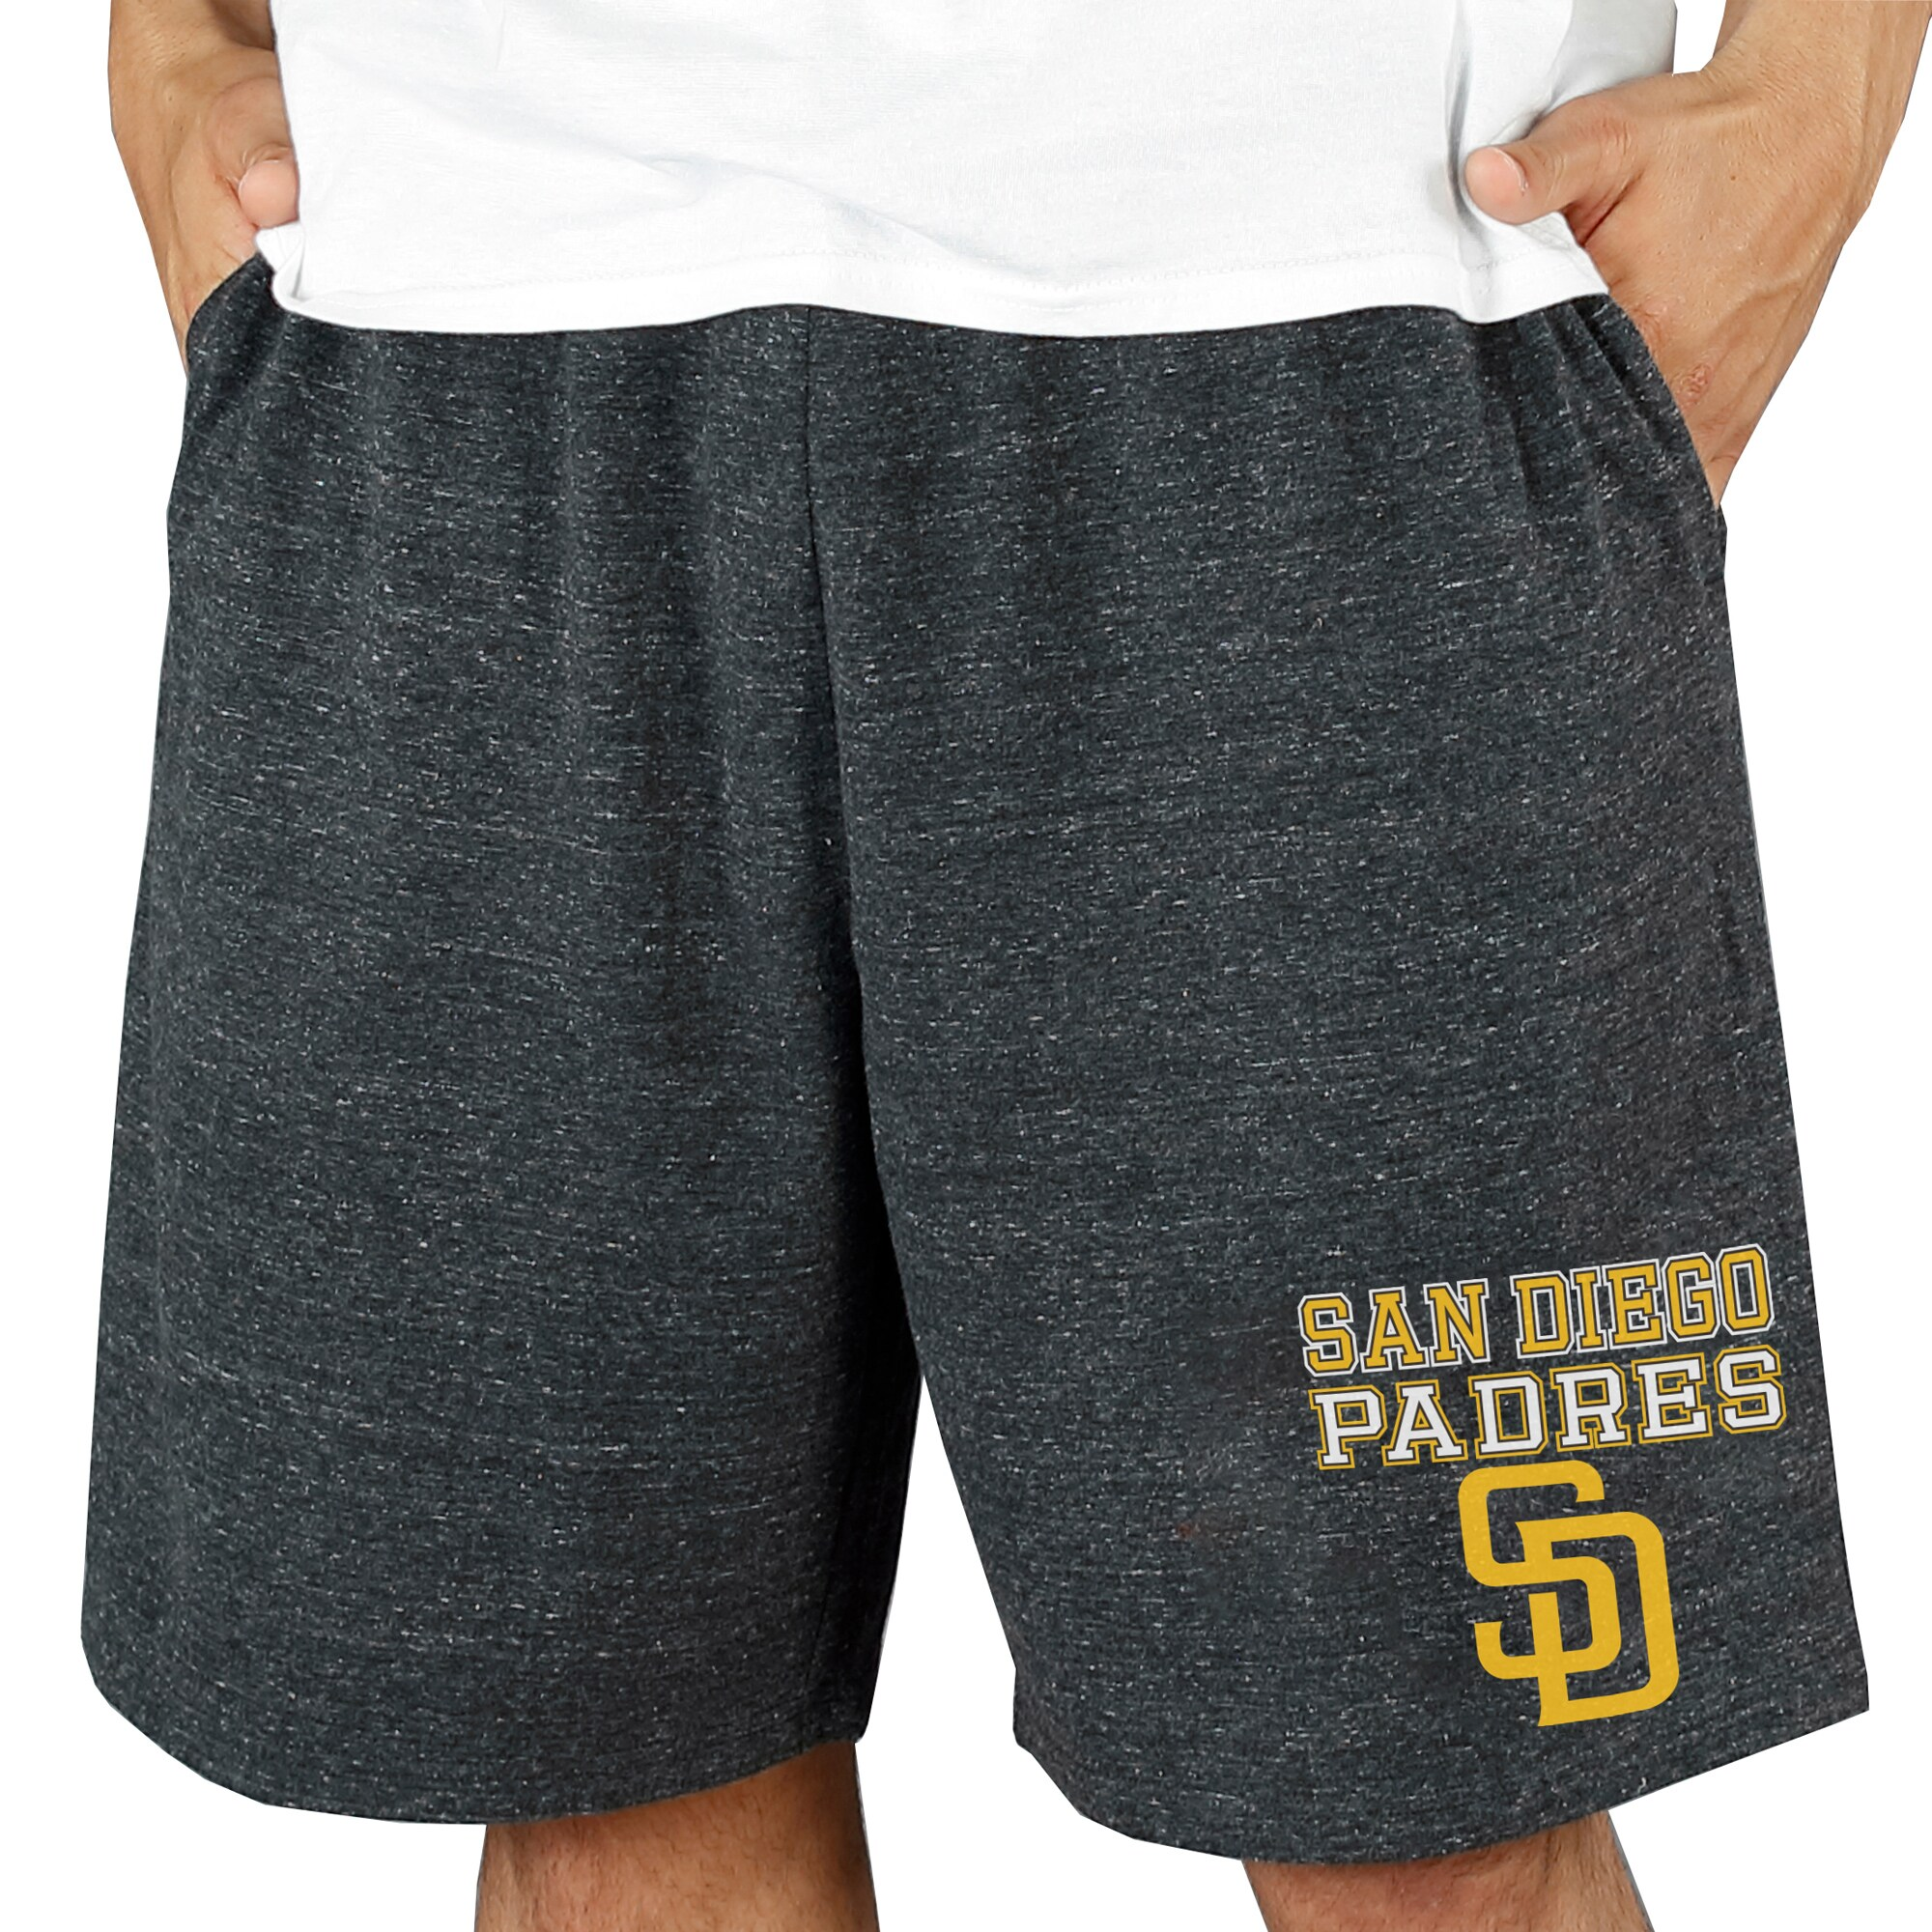 San Diego Padres Concepts Sport Pitch Knit Jam Shorts - Charcoal